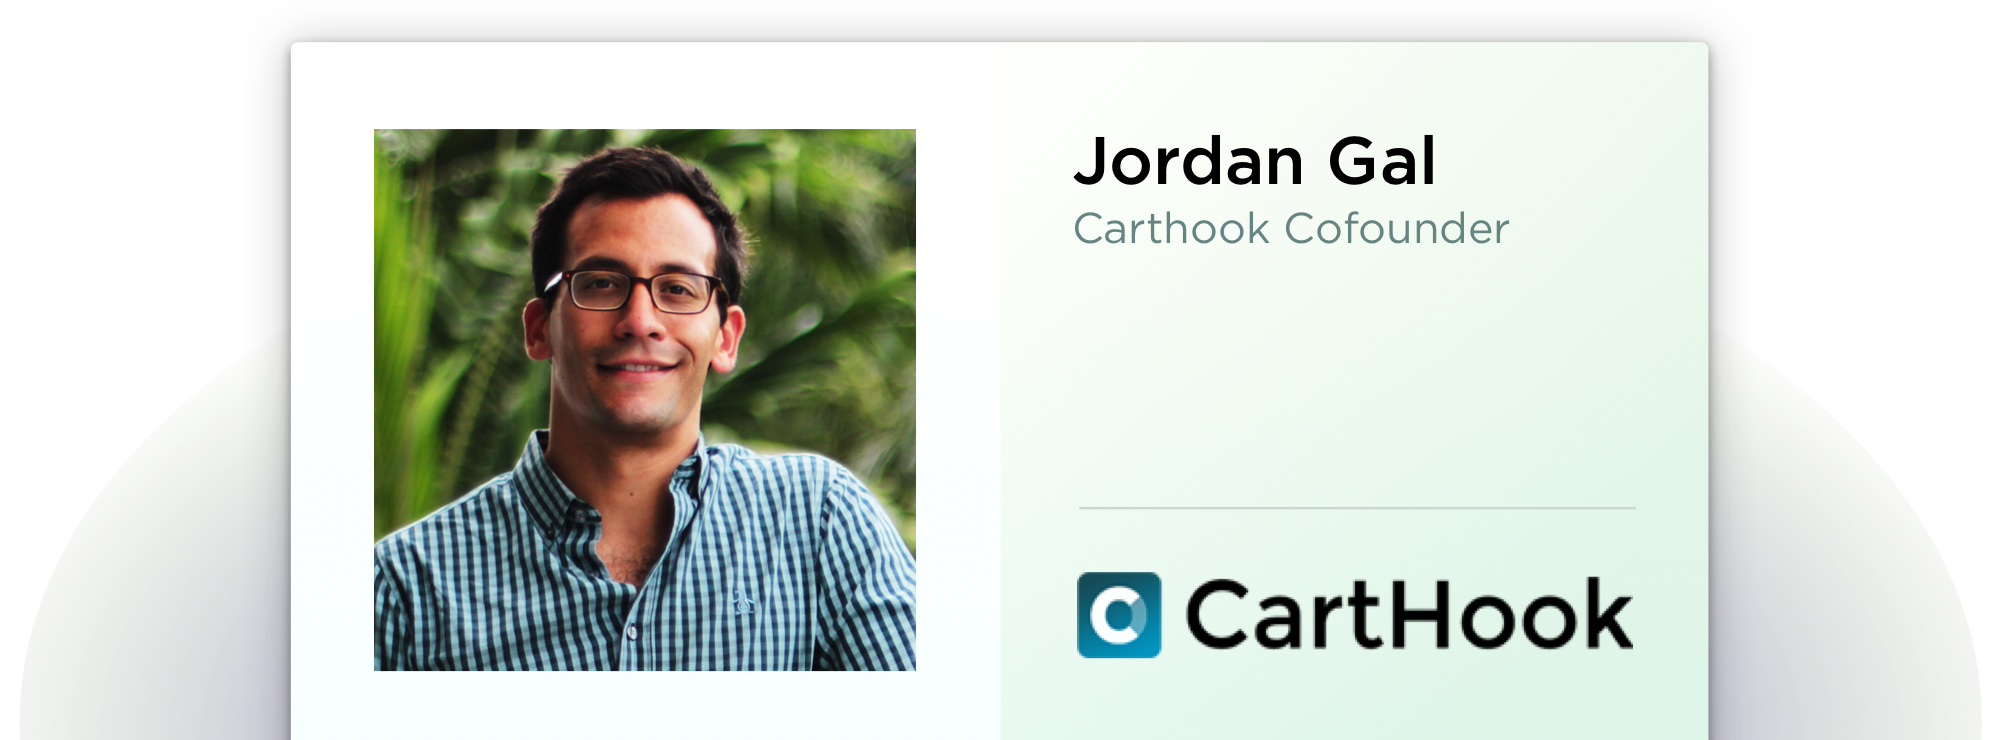 How CartHook Uses Content Marketing to Drive Traffic